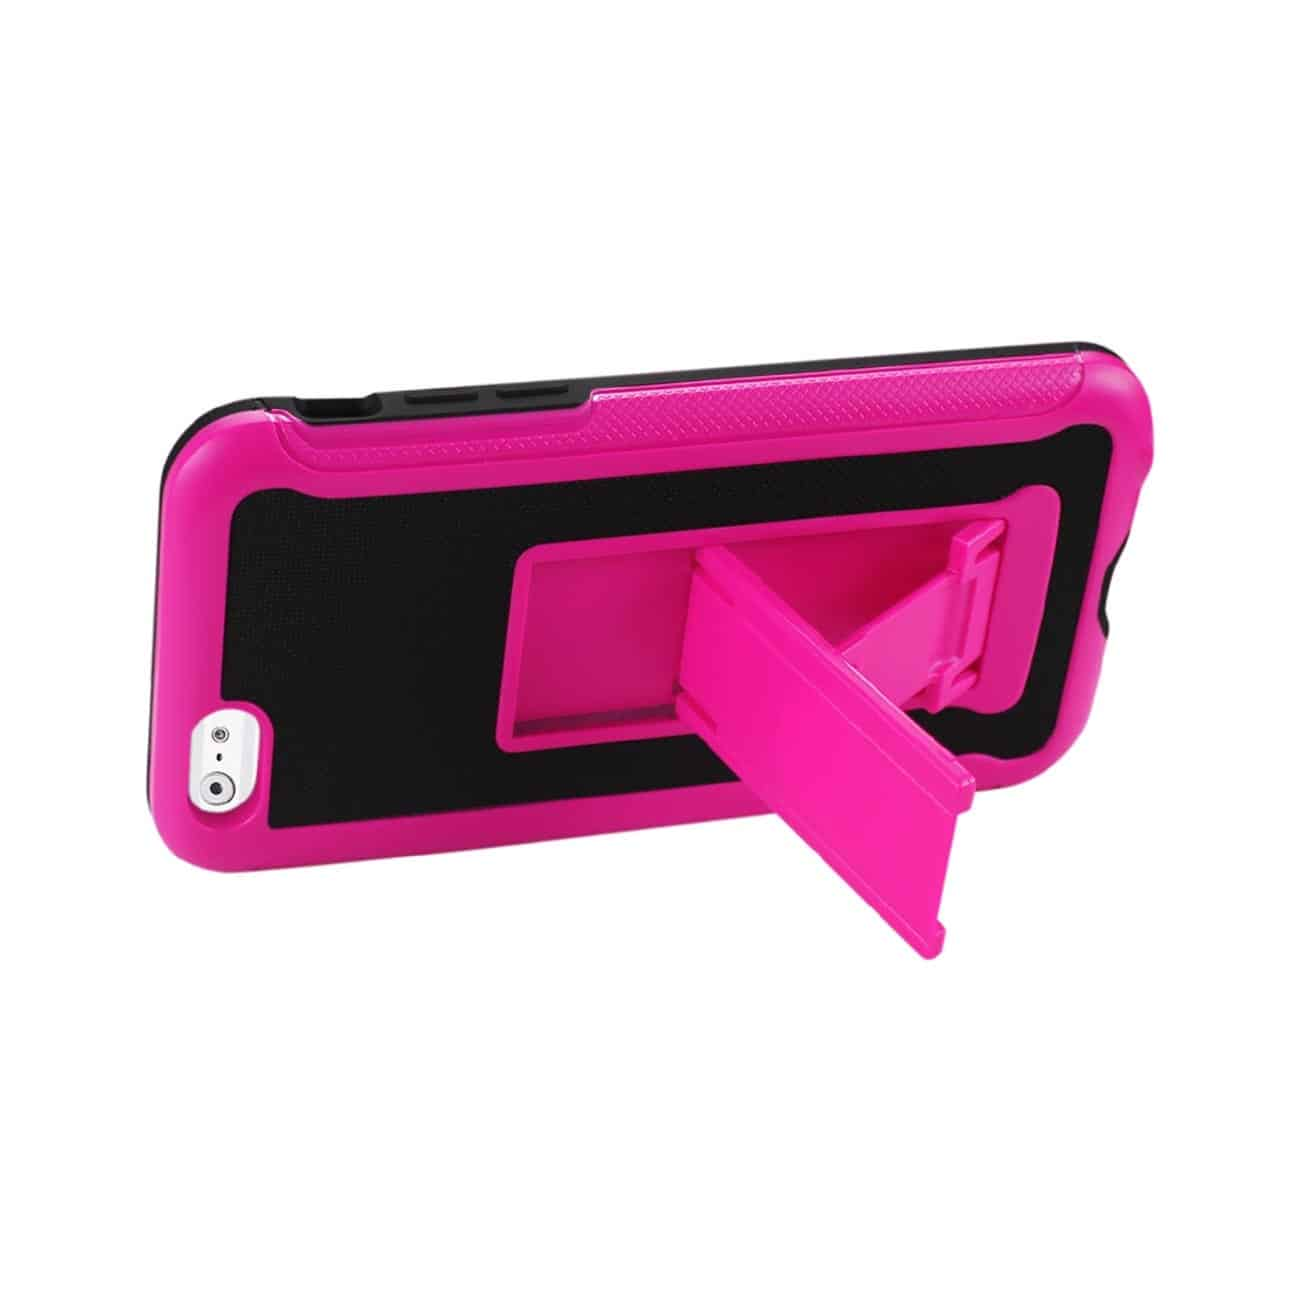 IPHONE 6 PLUS HYBRID HEAVY DUTY CASE WITH VERTICAL KICKSTAND IN BLACK HOT PINK